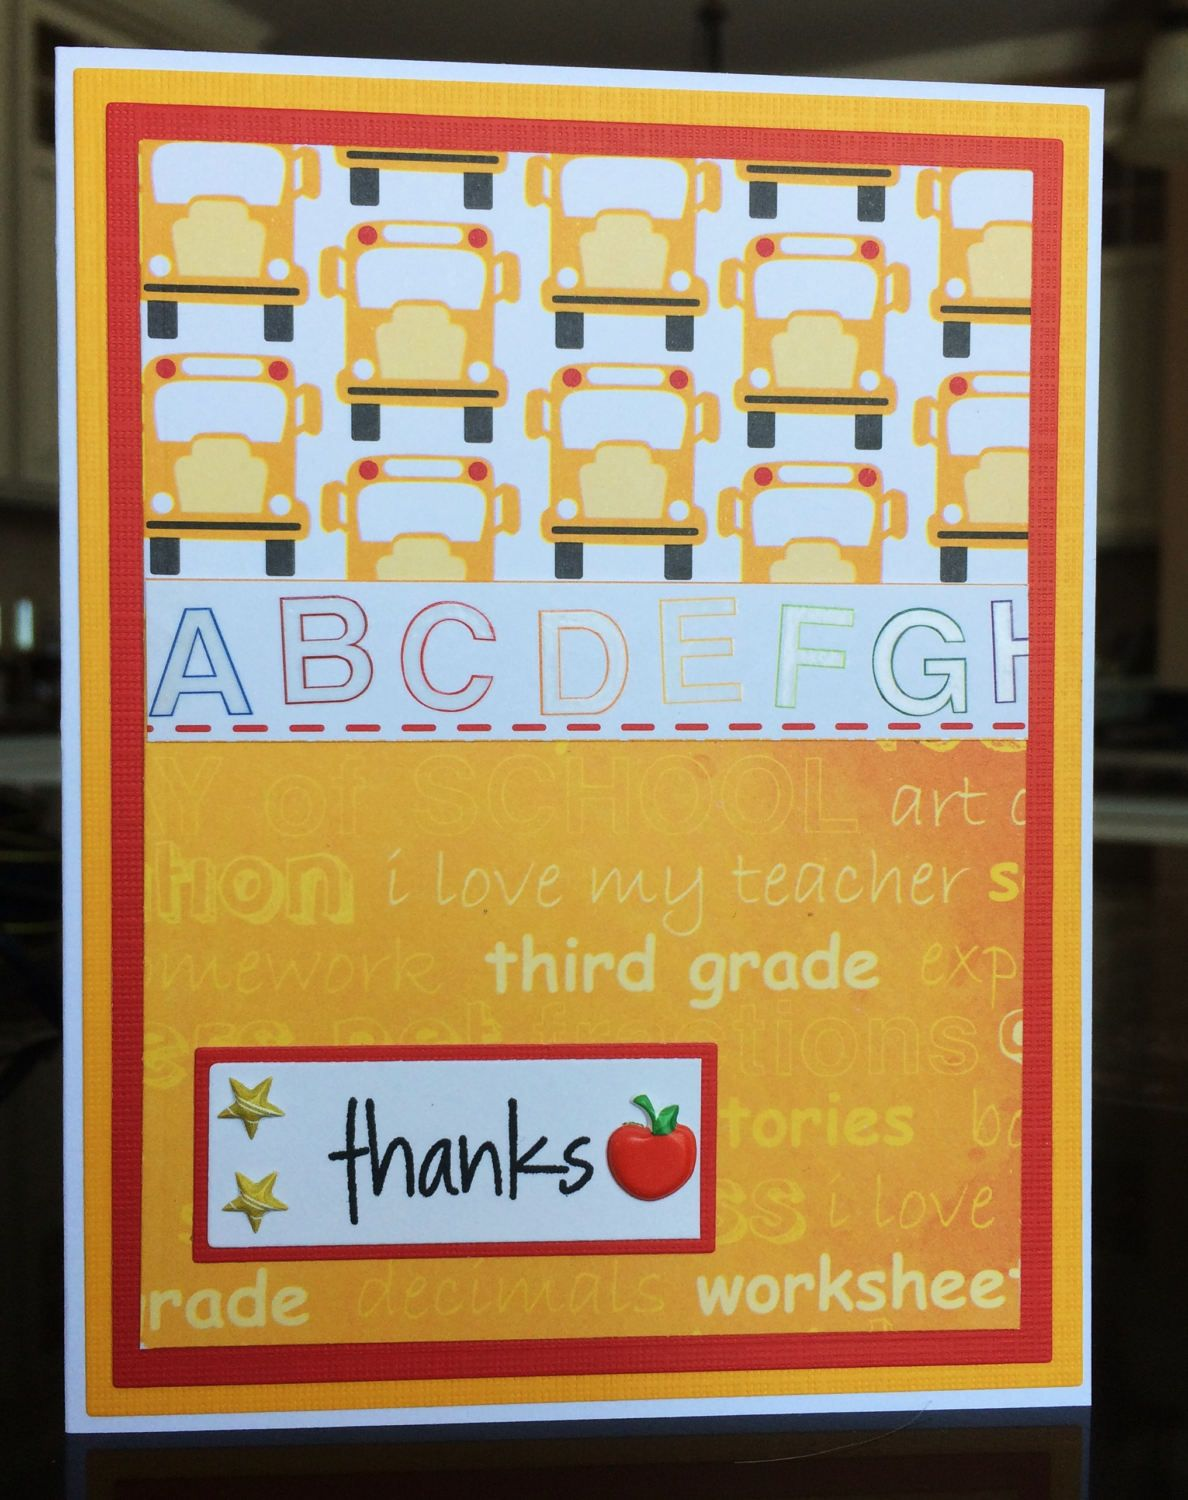 Handmade 3rd grade teacher or assistant teacher thank you note handmade grade teacher or assistant teacher thank you note handmade thanks greeting card school bus alphabet card red and yellow by treasureislandcards kristyandbryce Gallery